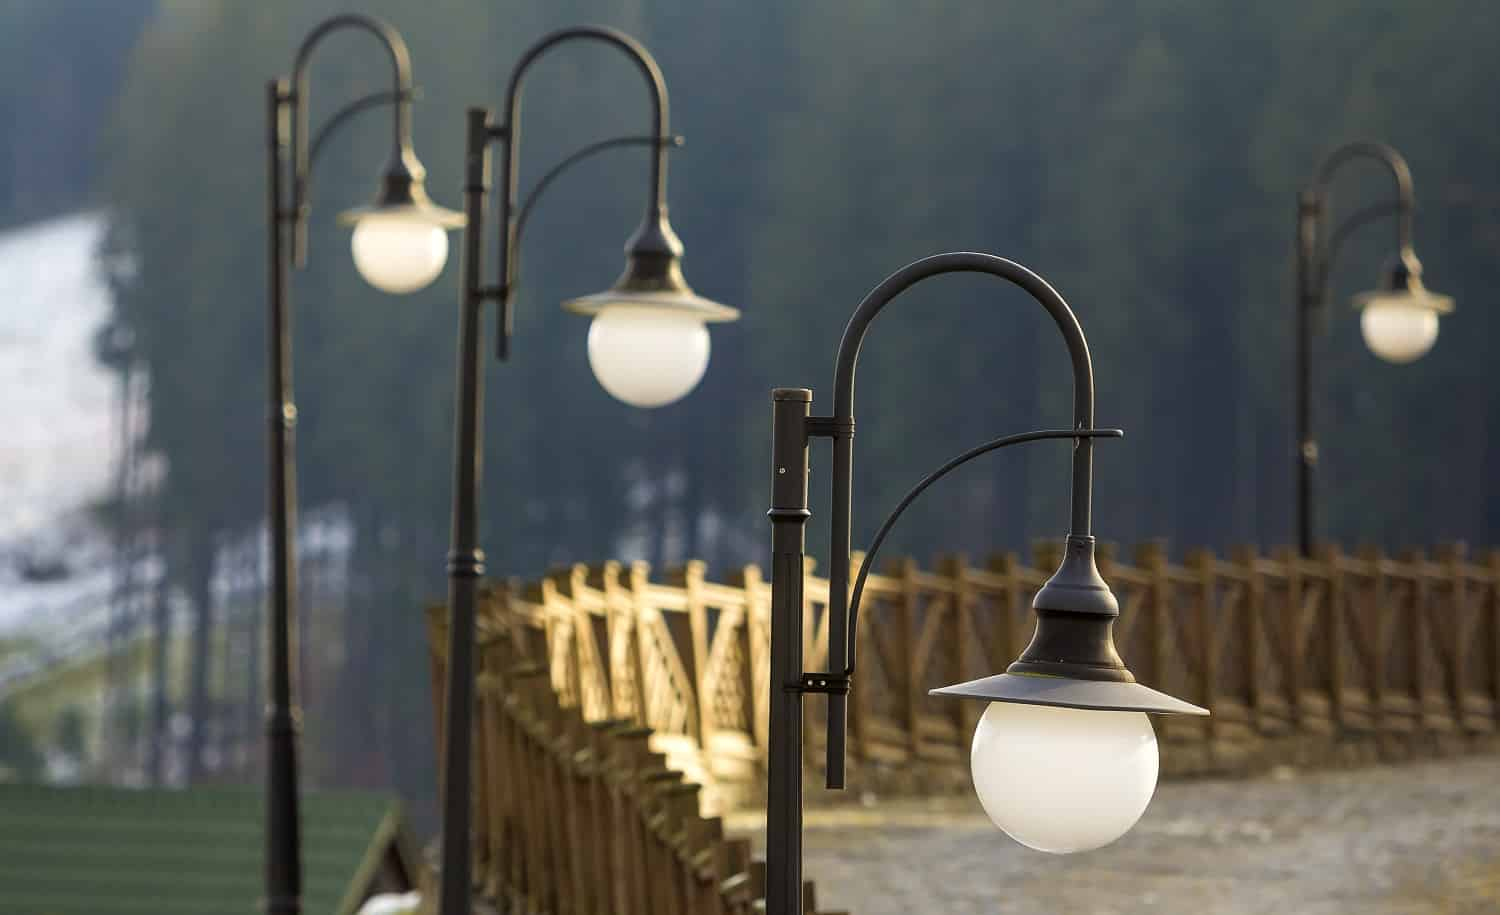 Street light lamps and wooden fence on rural street